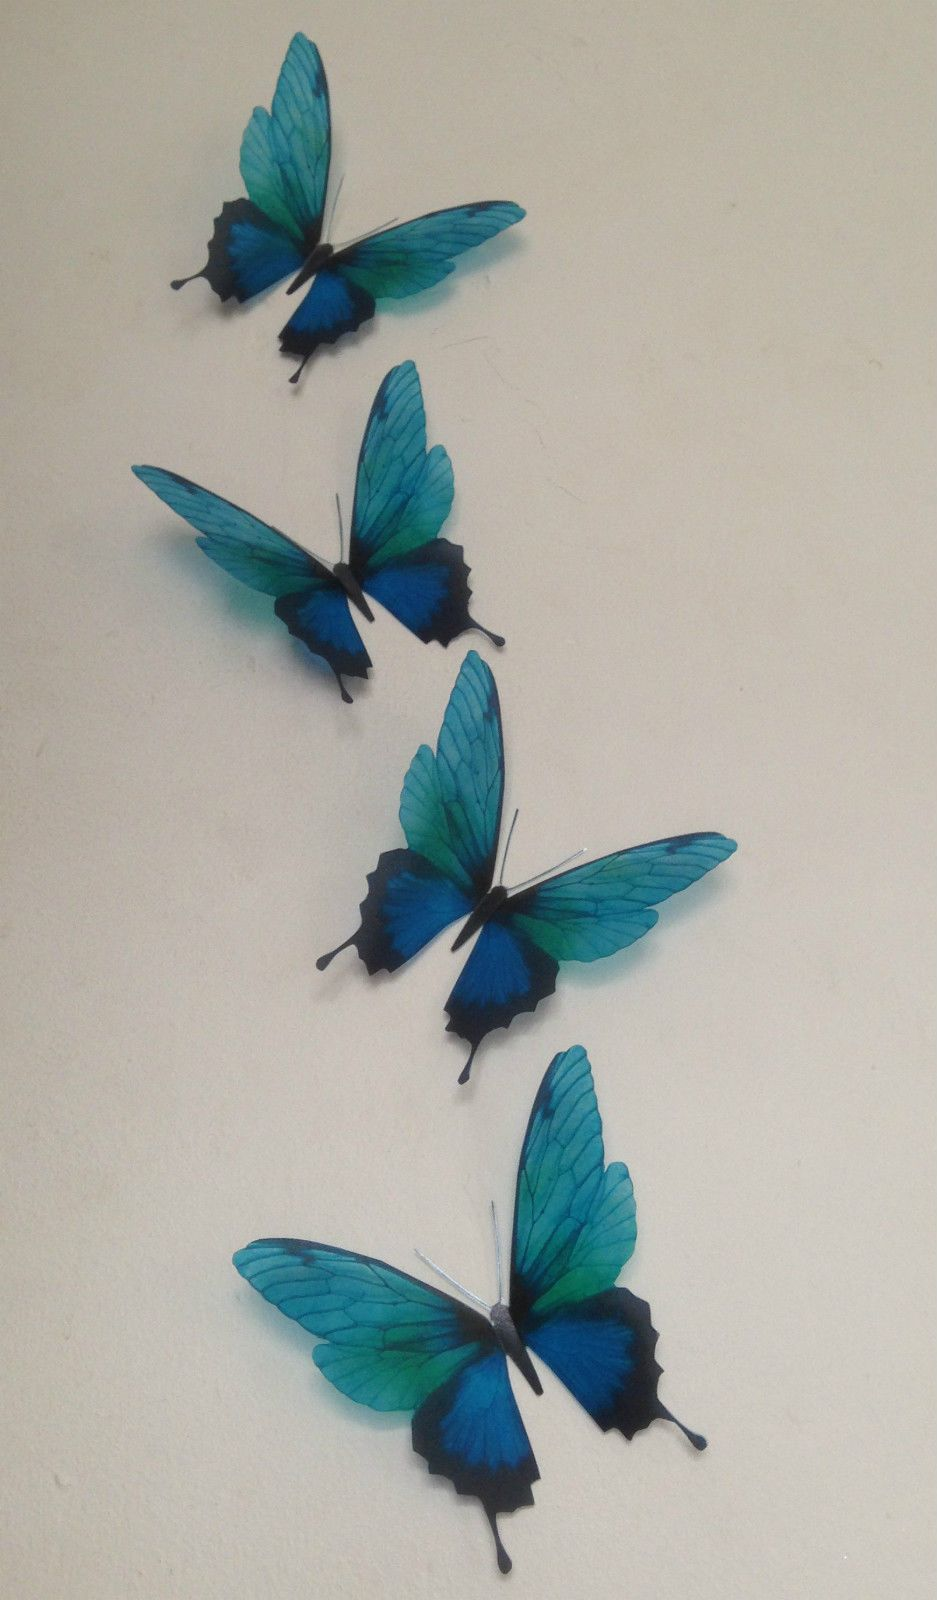 4 Vivid Teal Flying 3D Butterflies Wall Mounted Butterfly Art Home Accessories